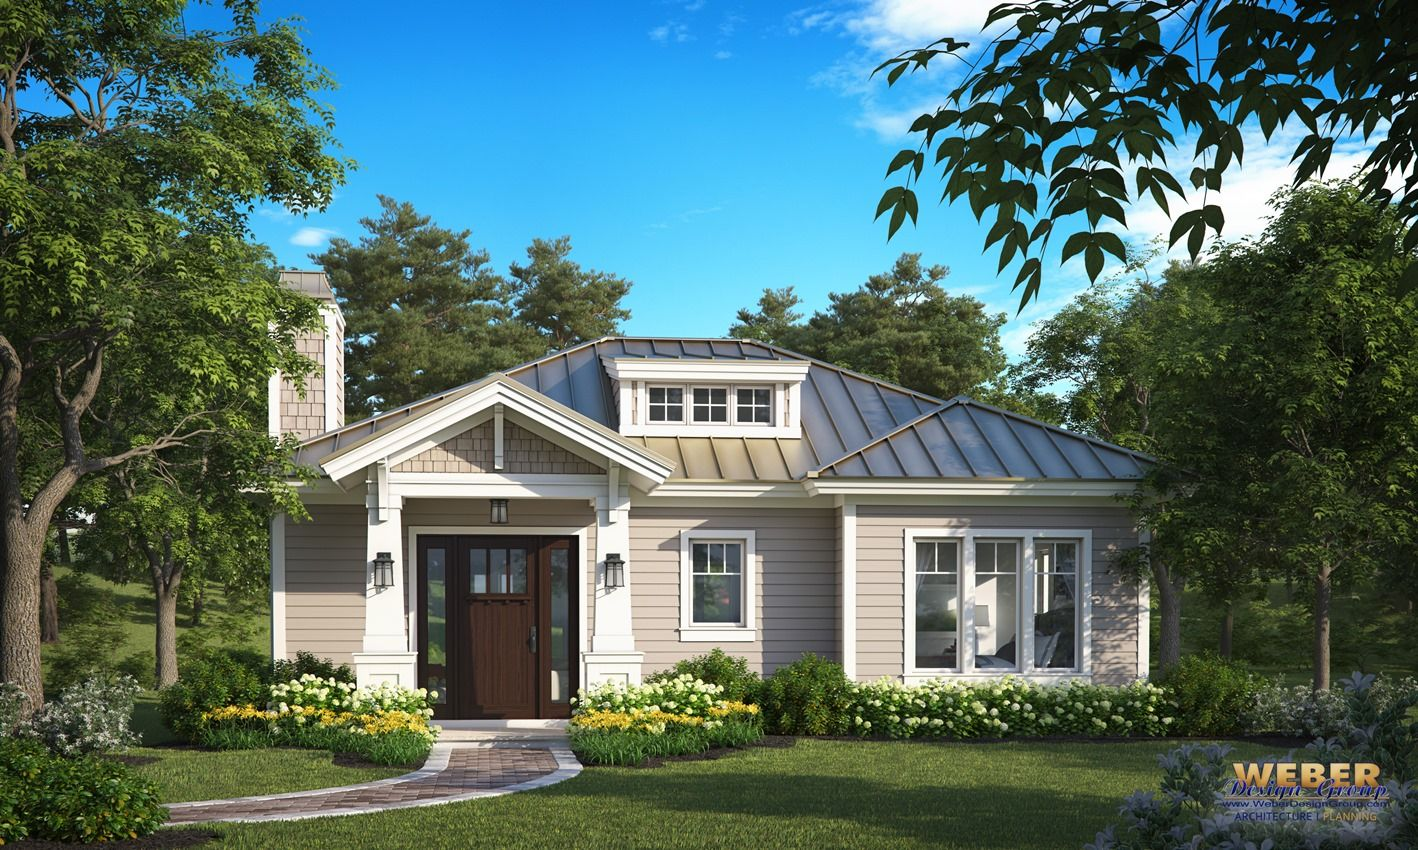 Small House Plan: 1 Story Cottage Style Home Floor Plan | Small ...